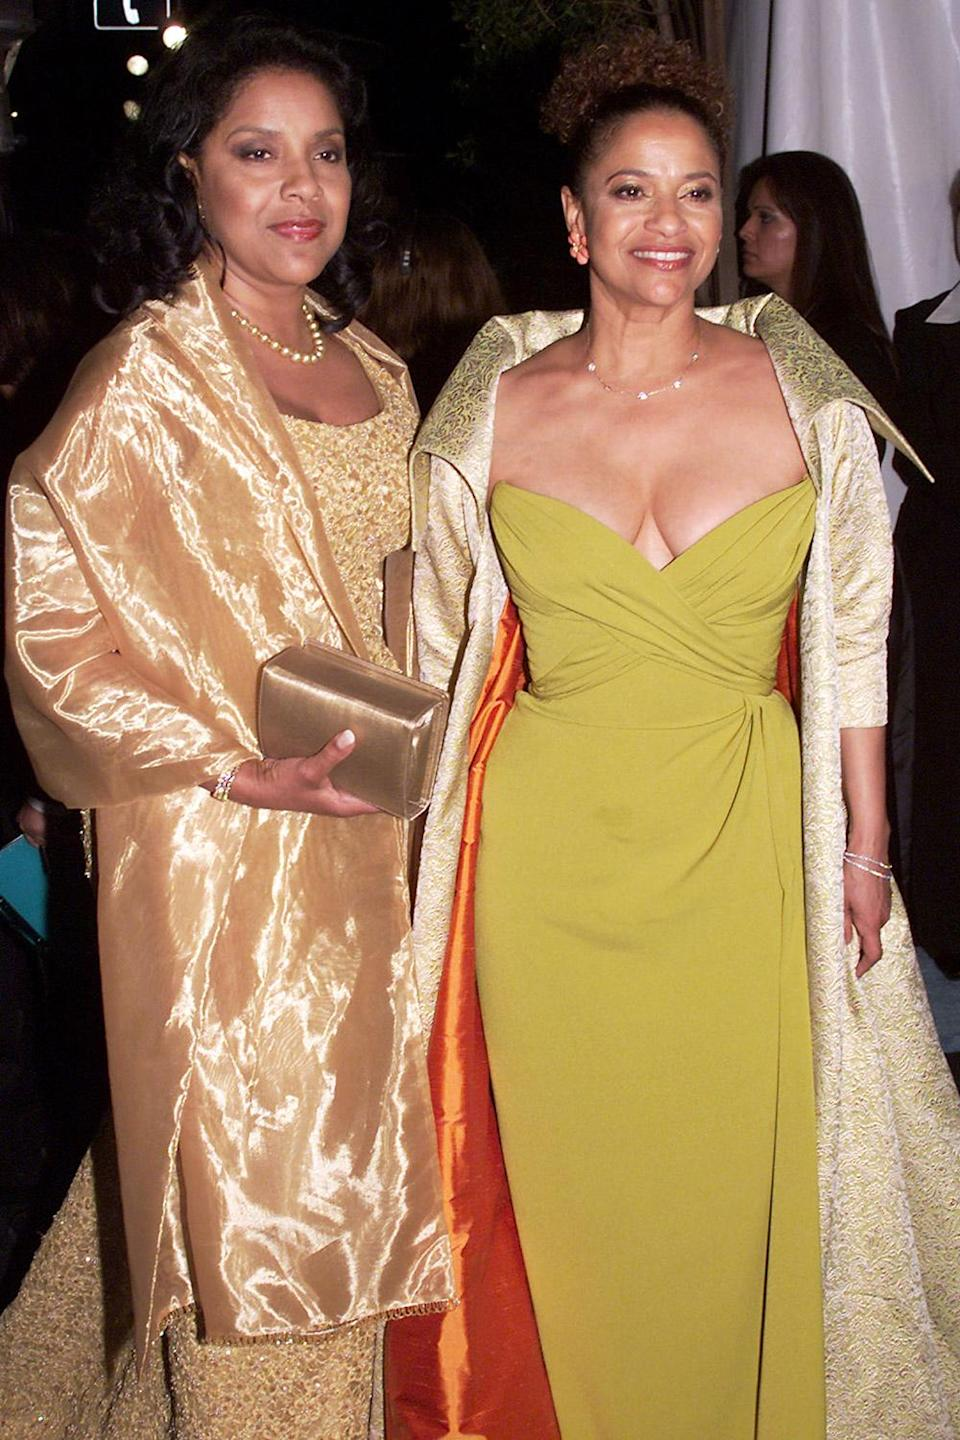 <p>Sisters make the best party date! Phylicia Rashad and Debbie Allen went to the 2001 Elton John Oscar Party together. </p>